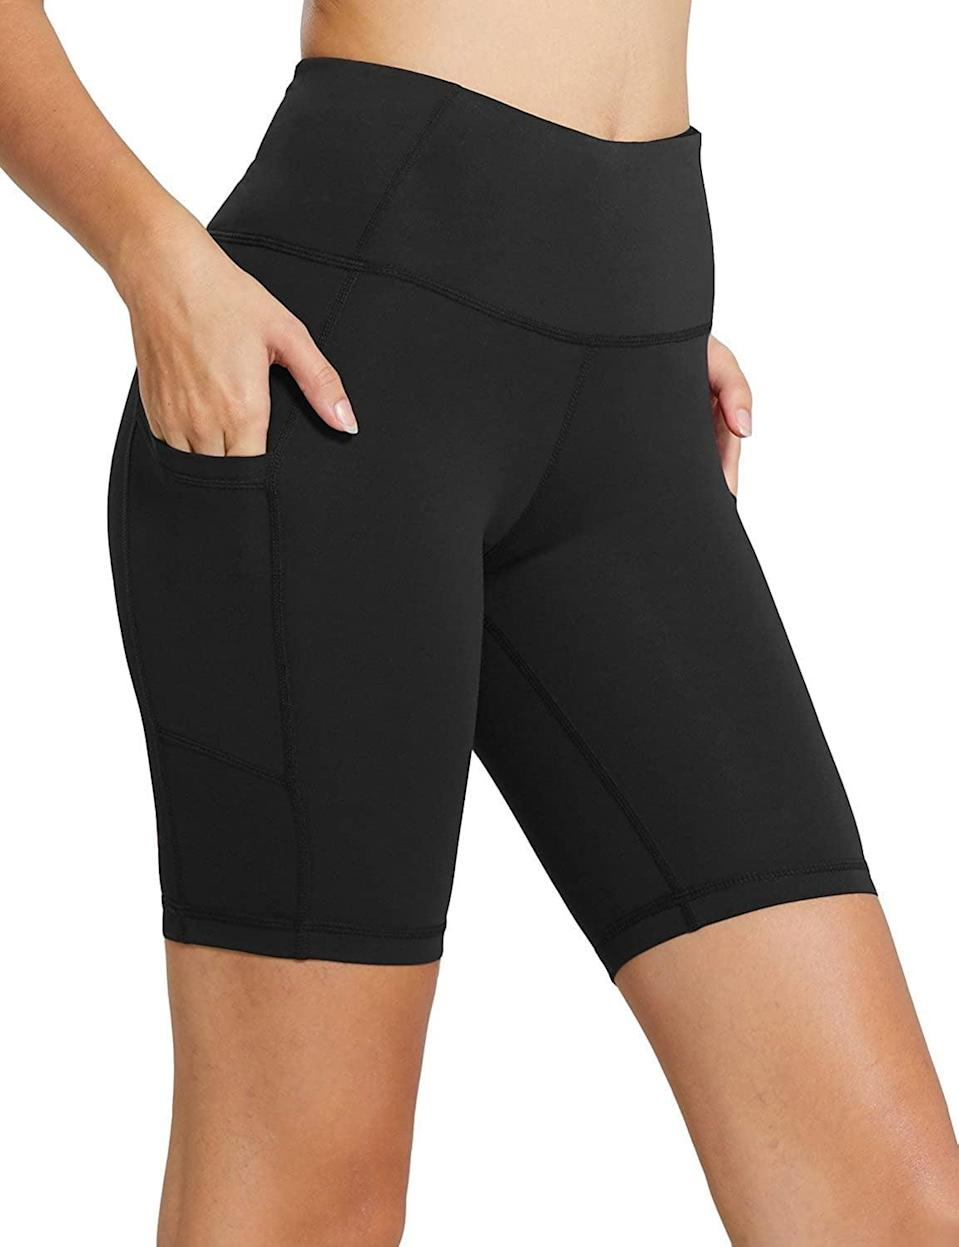 <p>Store your phone and headphones in these <span>Baleaf High Waist Workout Shorts</span> ($24).</p>